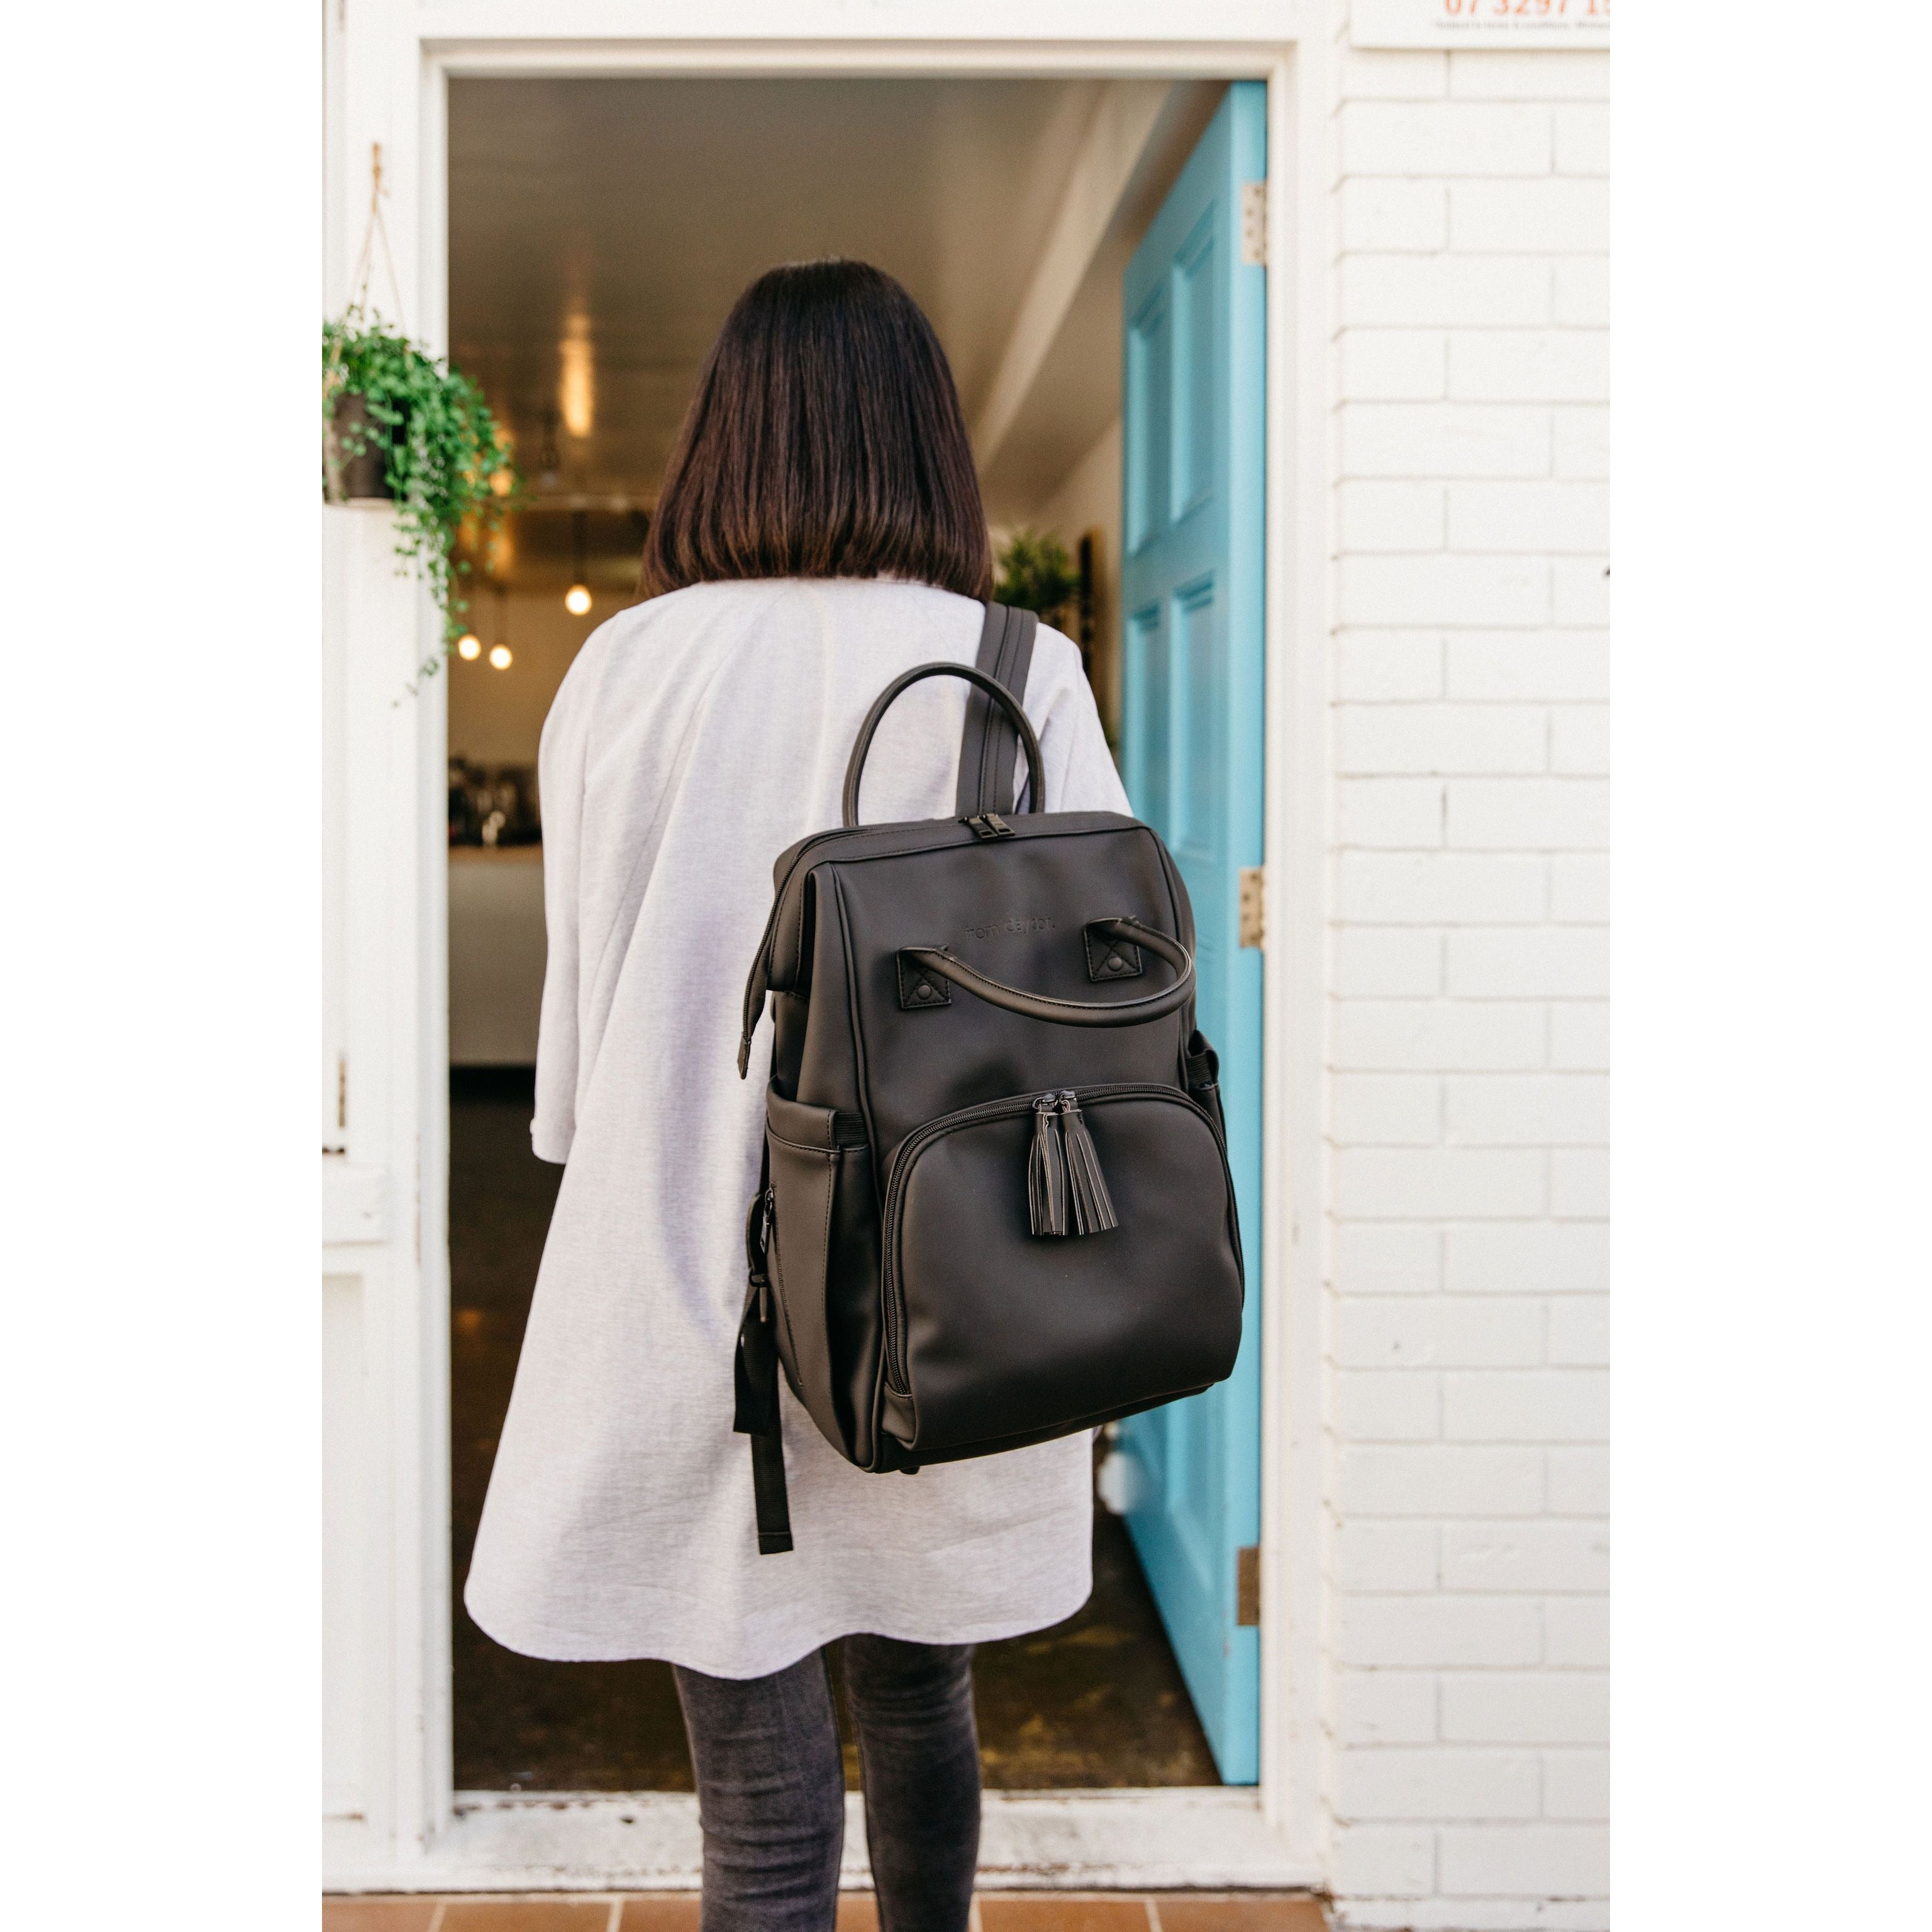 Sunday Luxe Nappy (Diaper) Bag 2.0 Backpack